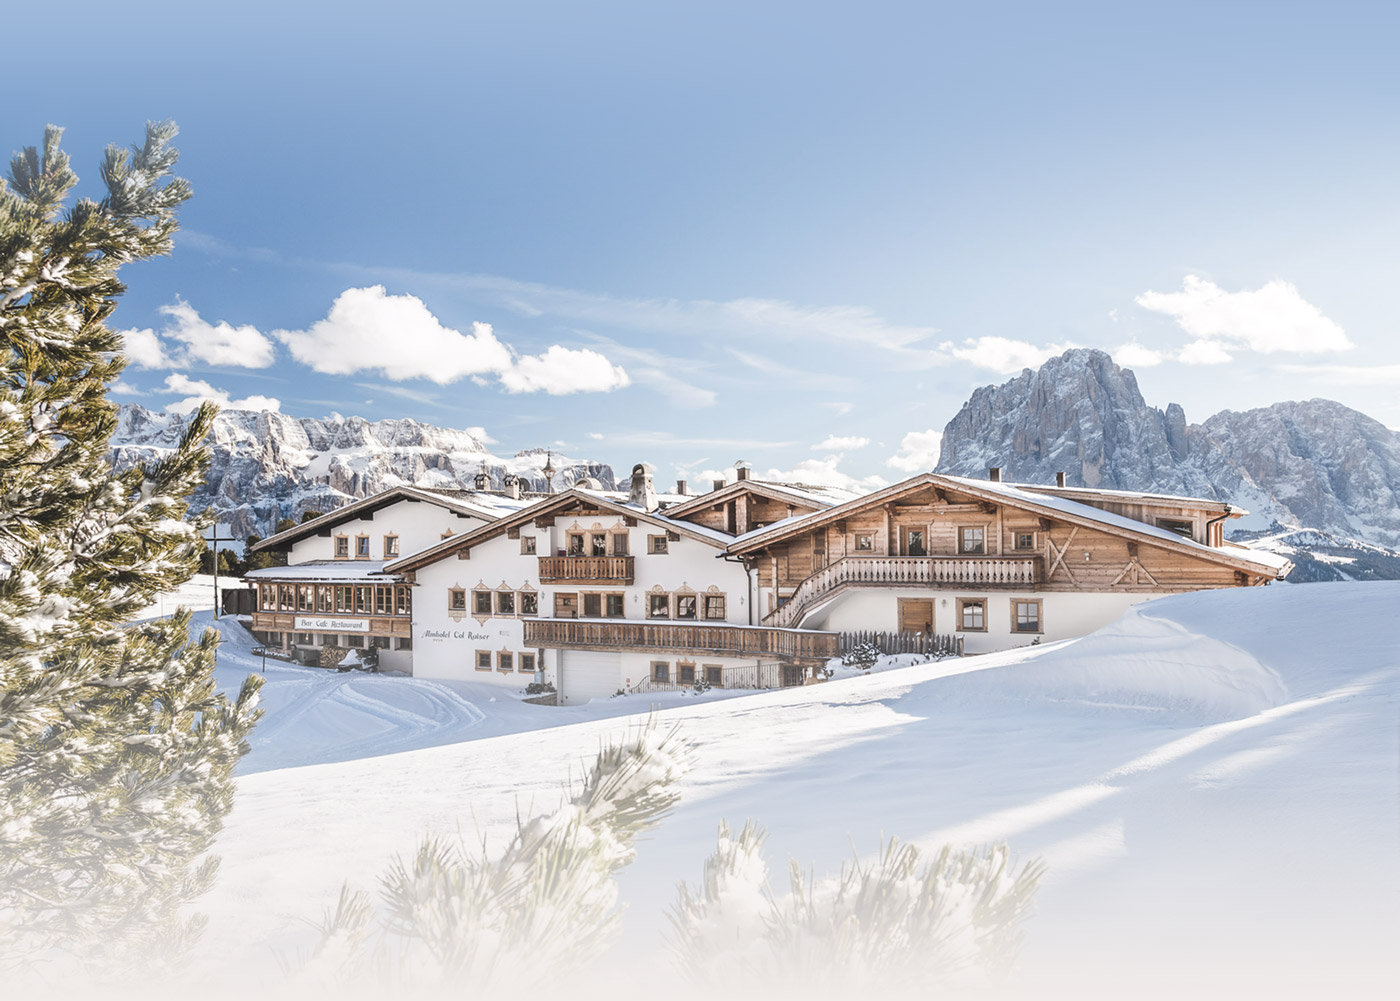 Picturesque winter landscape skiing holiday Dolomites Val Gardena